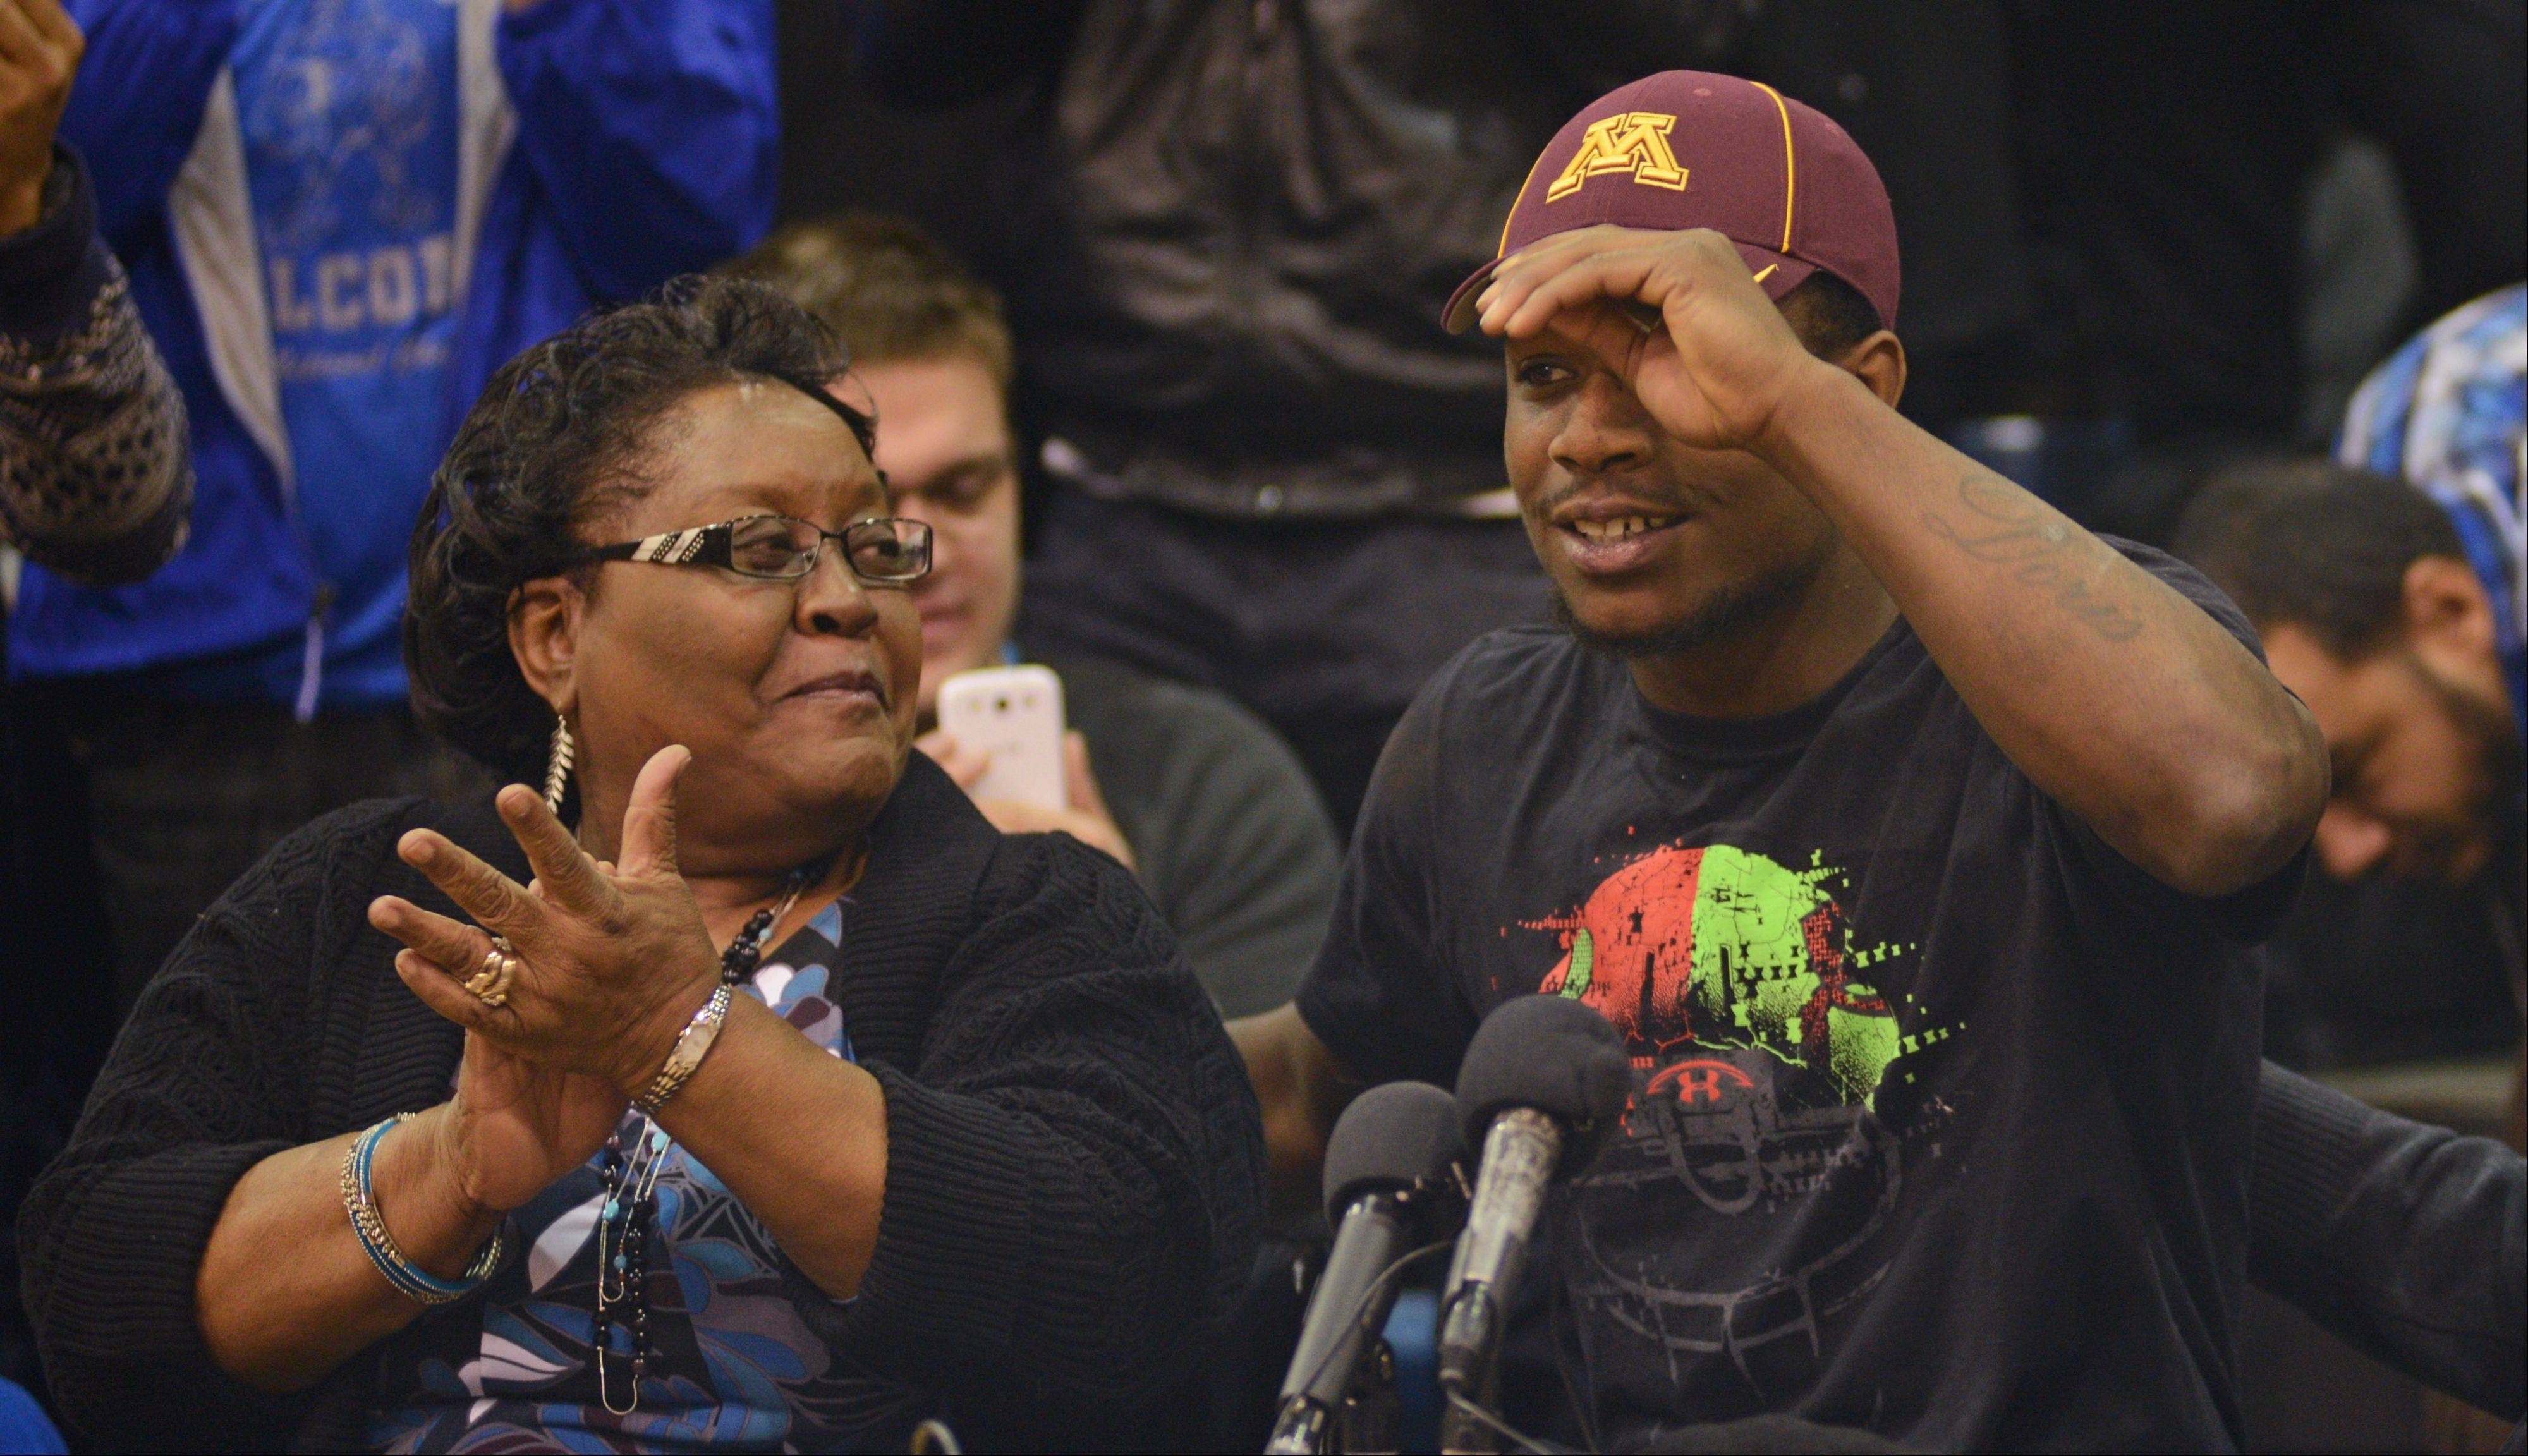 Minneapolis RB tops Minnesota's 2014 class